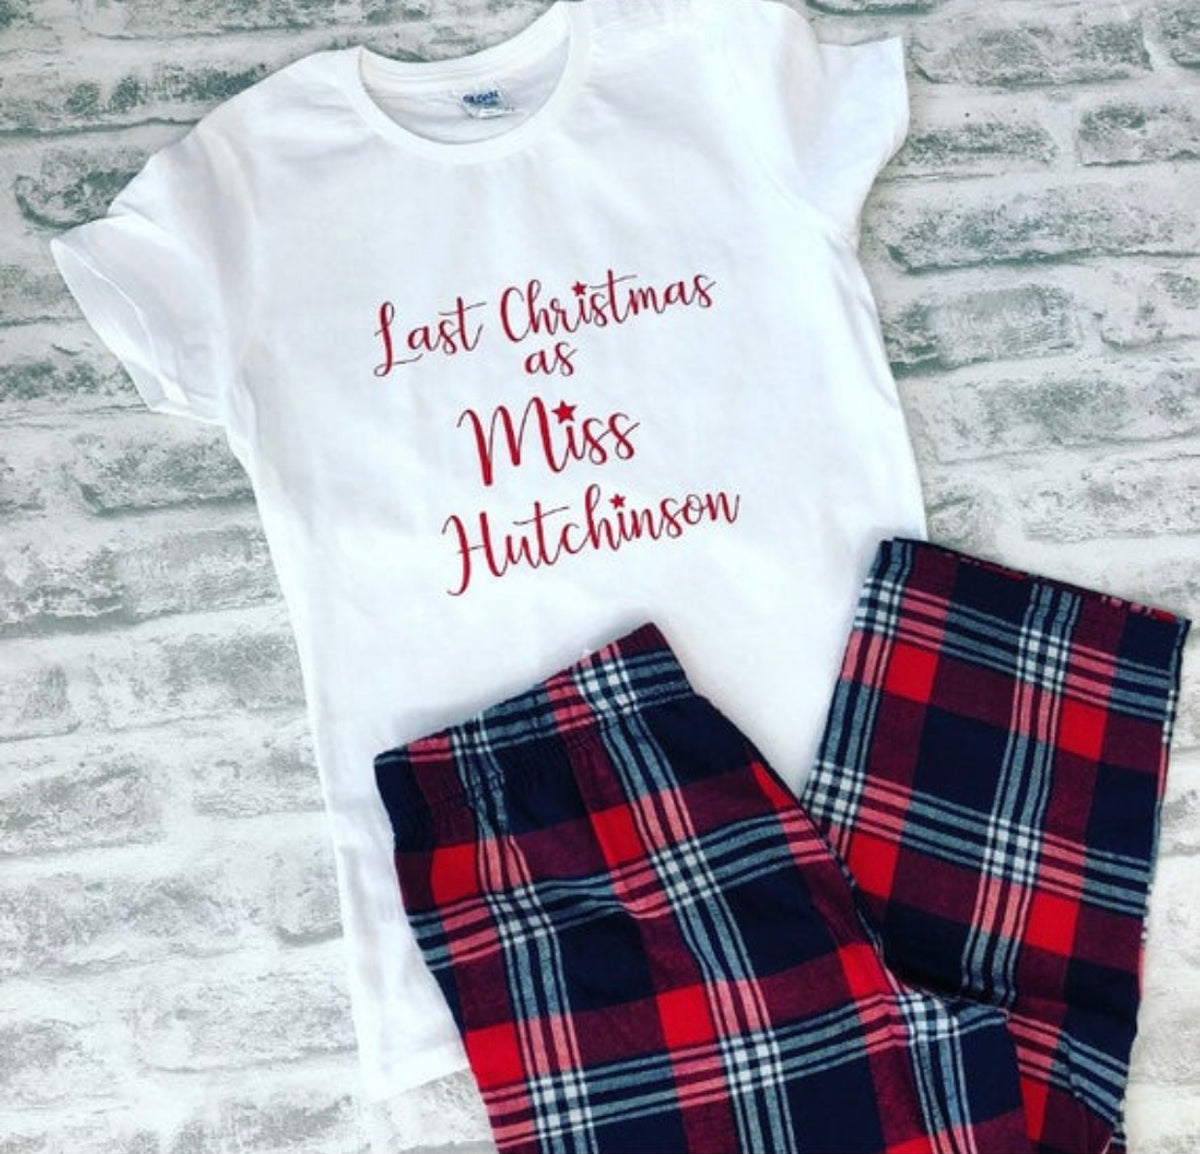 Last Christmas as a Miss pyjamas